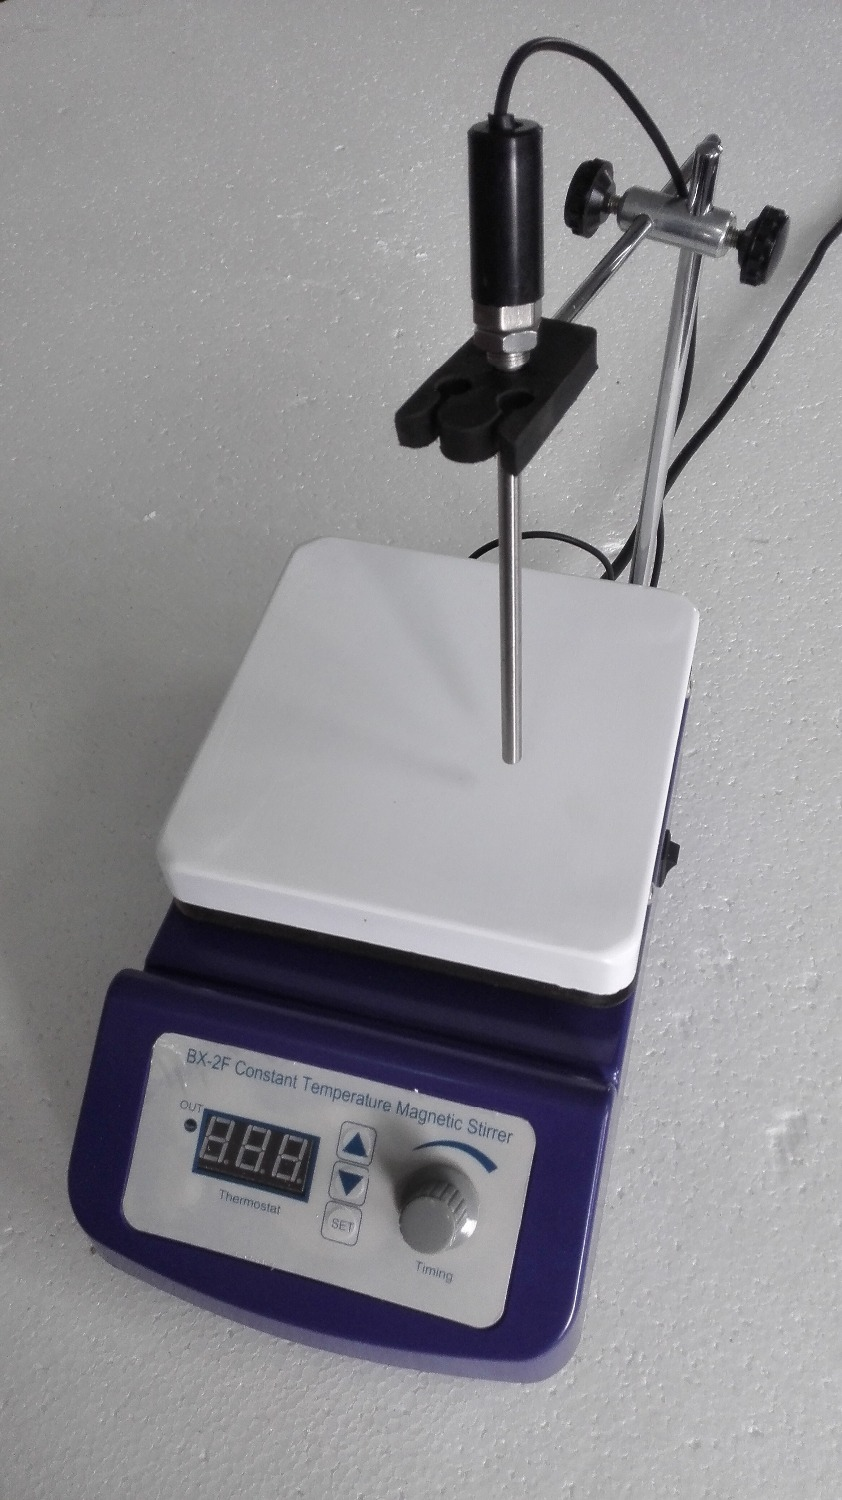 Digital Magnetic Stirrer, 17x17cm Hot Plate, 4000ml Capacity, Temperature Control, 110V or 220V cybernetics or control